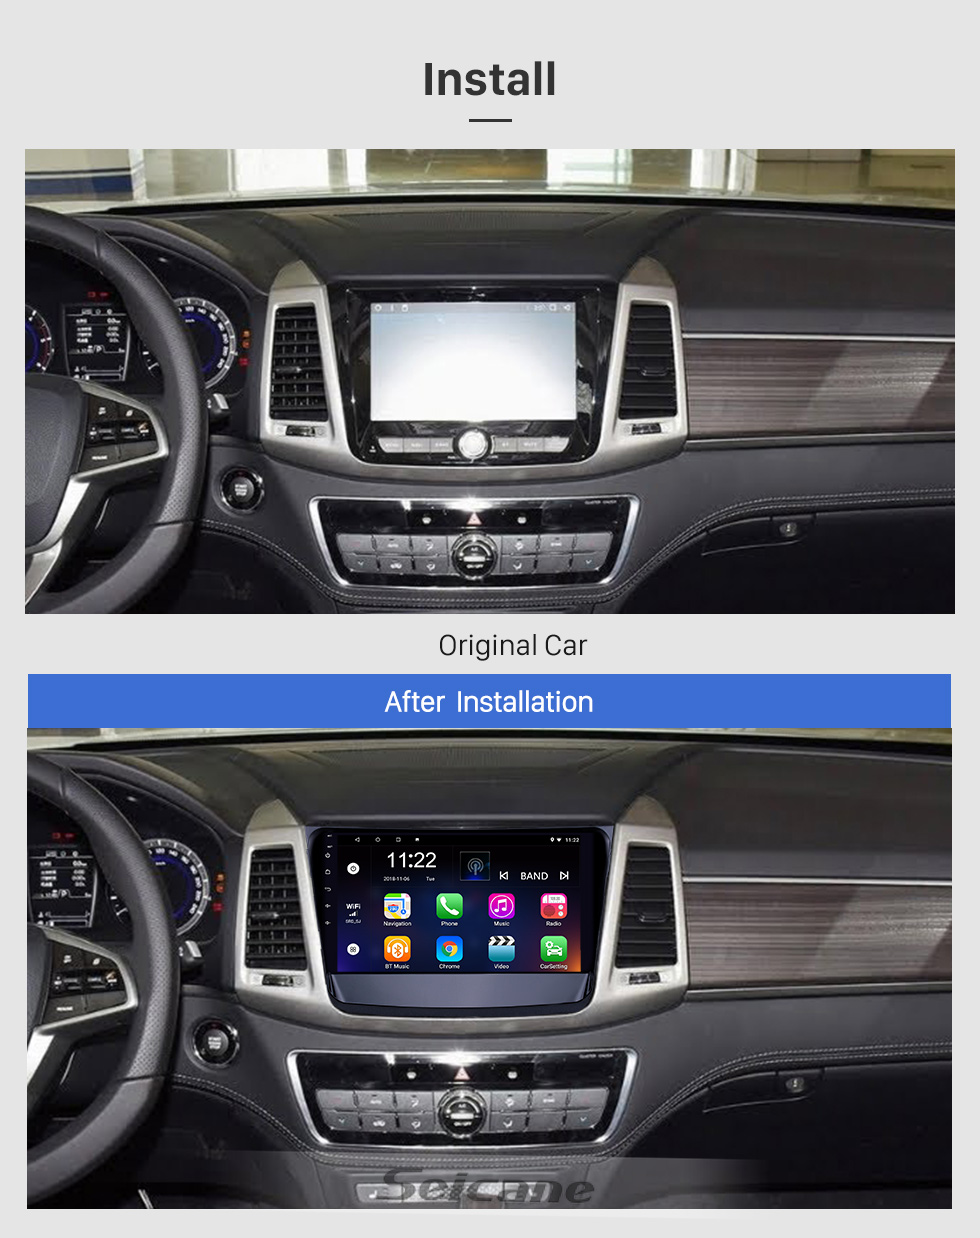 Seicane 10.1 inch Android 8.1 HD Touchscreen GPS Navigation Radio for 2019 Ssang Yong Rexton with Bluetooth WIFI AUX support Carplay Mirror Link